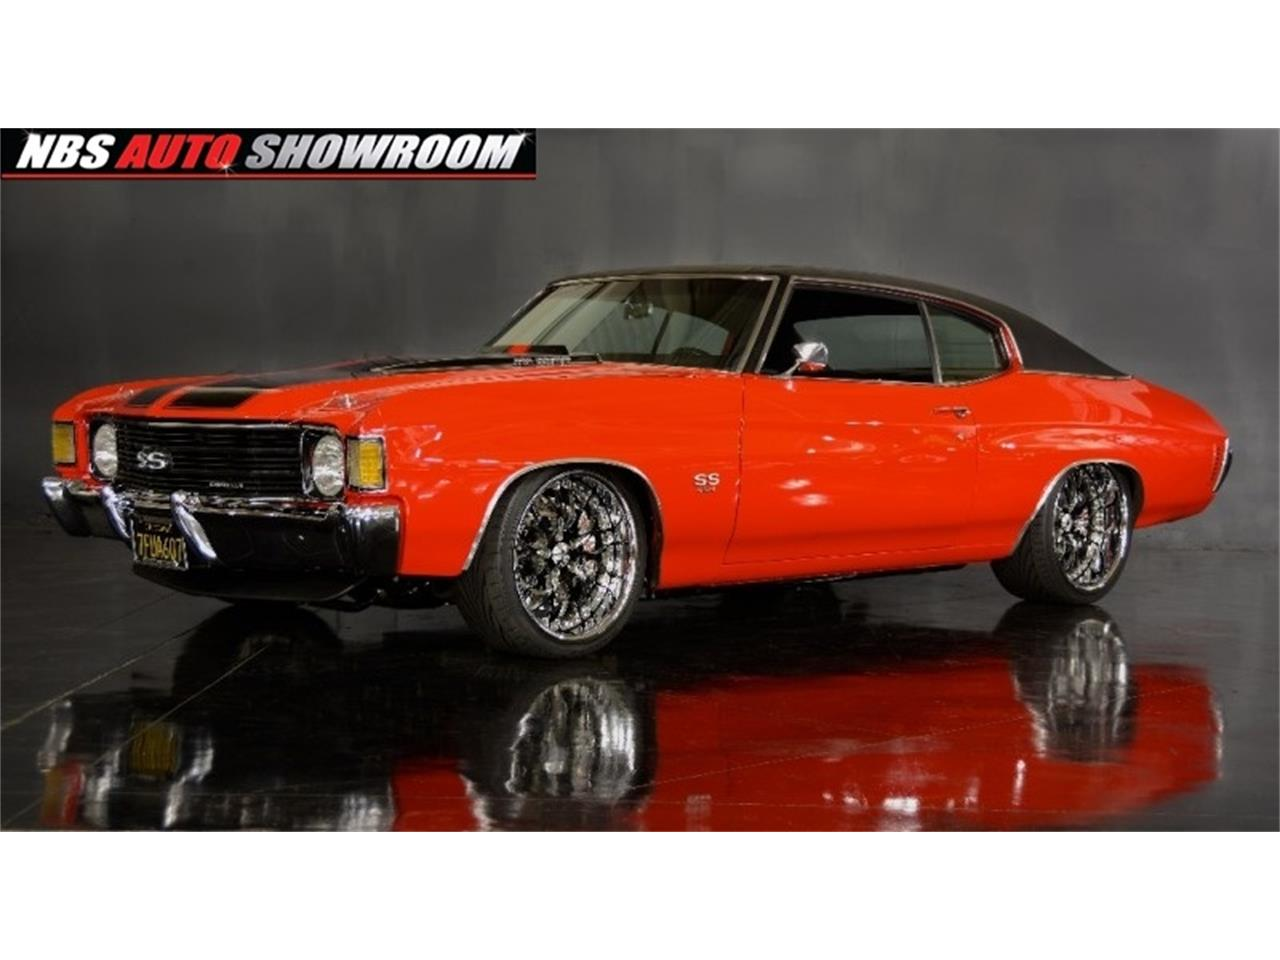 Large Picture of Classic '72 Chevrolet Chevelle located in California Offered by NBS Auto Showroom - KCKI